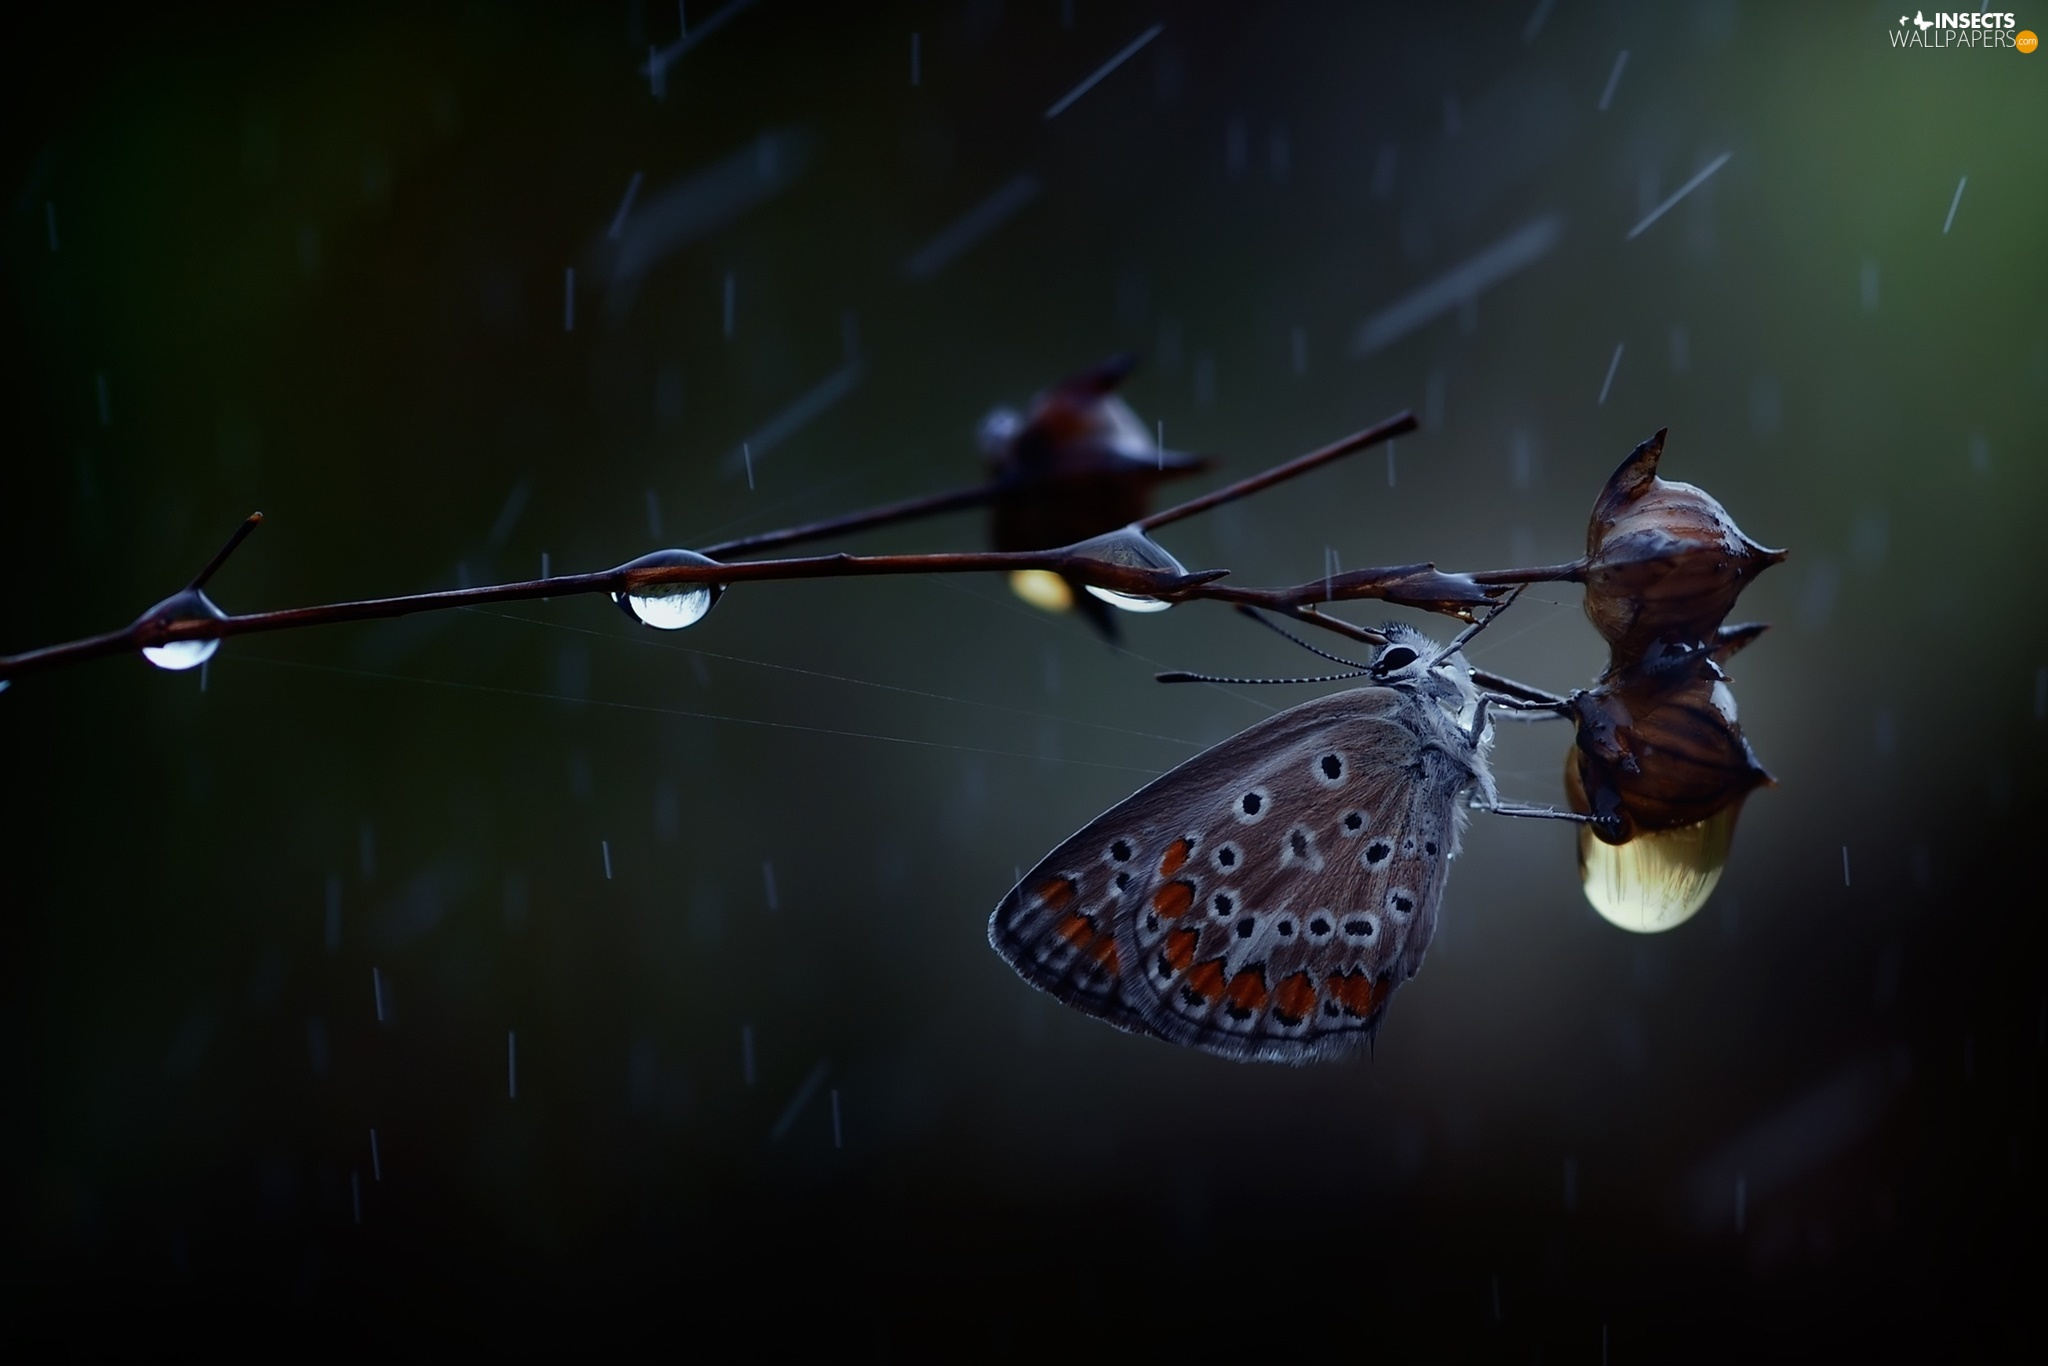 twig, butterfly, drops, Rain, The herb, Dusky Icarus